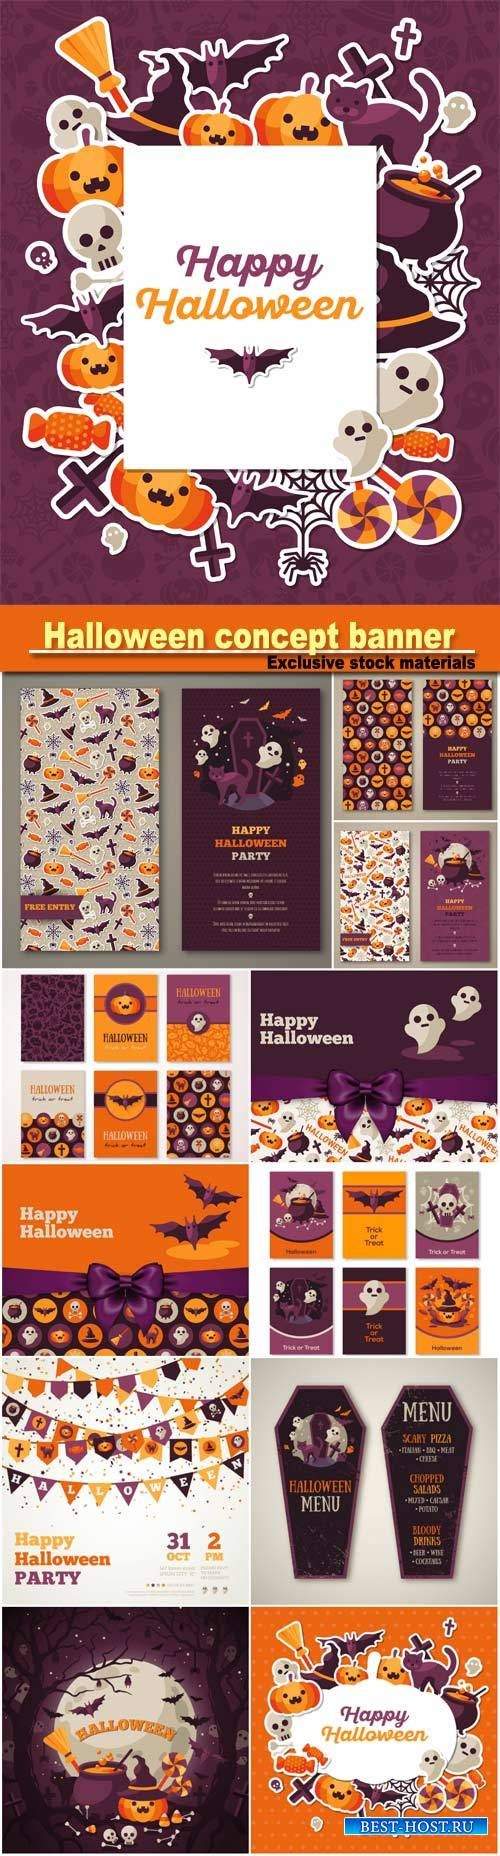 Halloween concept banner with flat Icons stickers